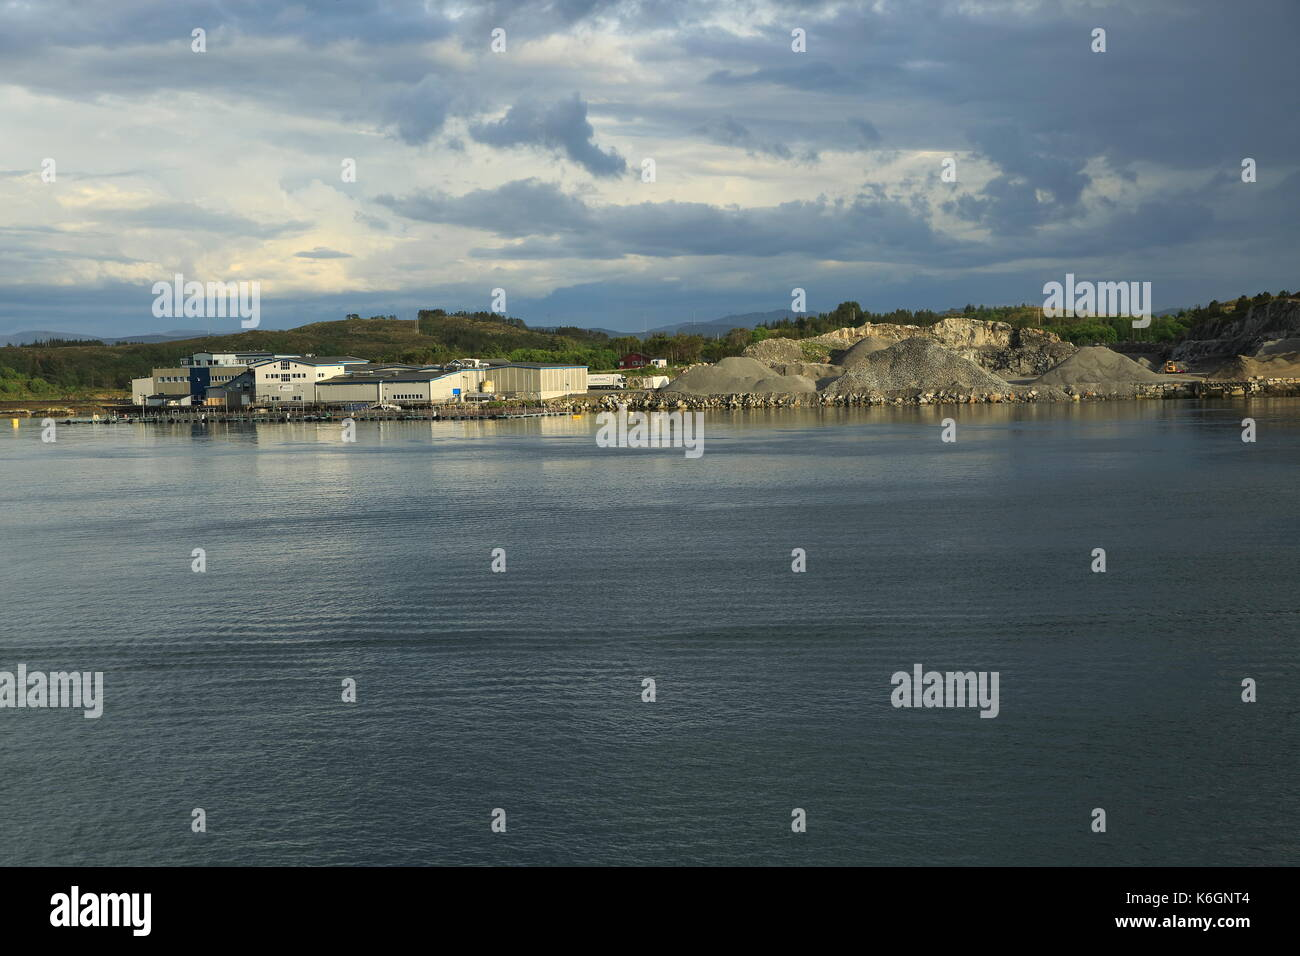 Quarrying industry Rorvik in the municipality of Vikna in Nord-Trøndelag county, Norway - Stock Image